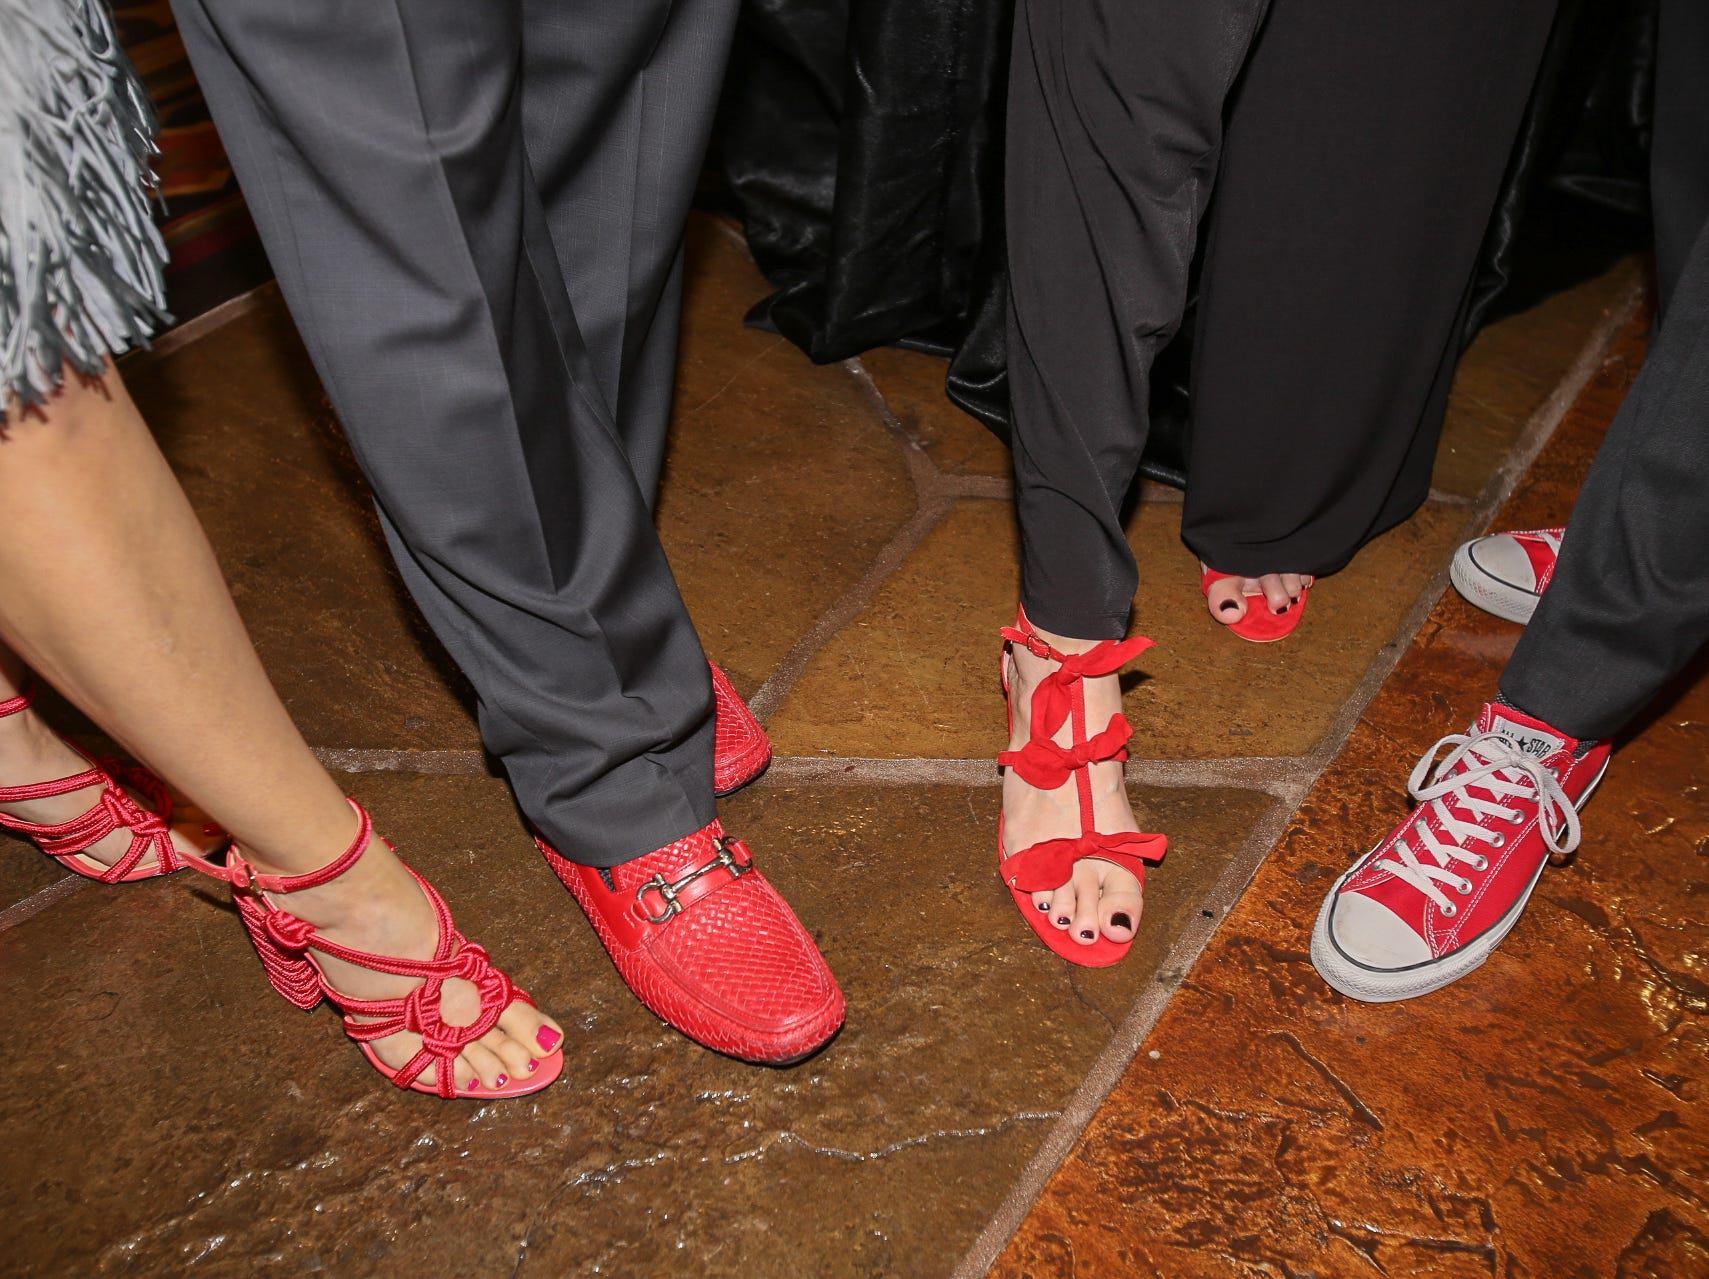 Shoes at the Red Shoe Gala